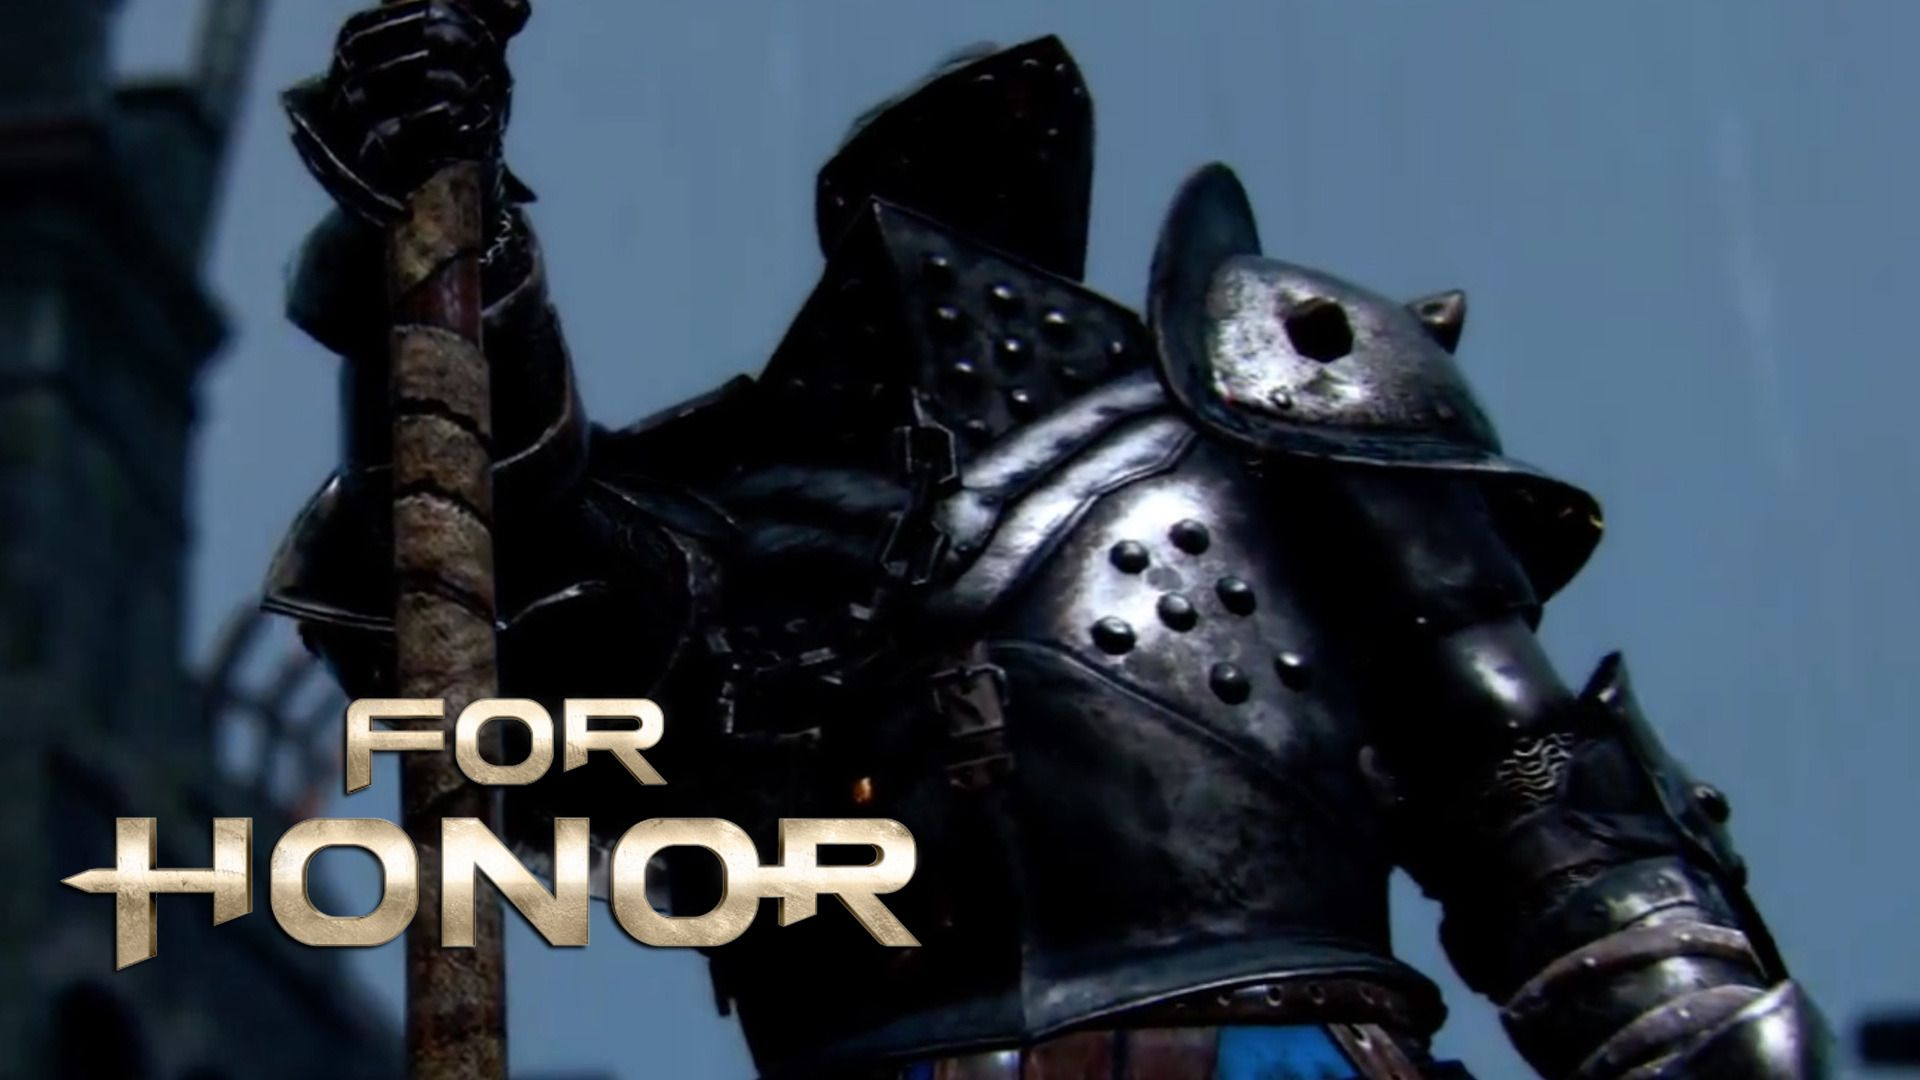 1920x1080 For Honor - The Lawbringer (Knight) Gameplay Trailer